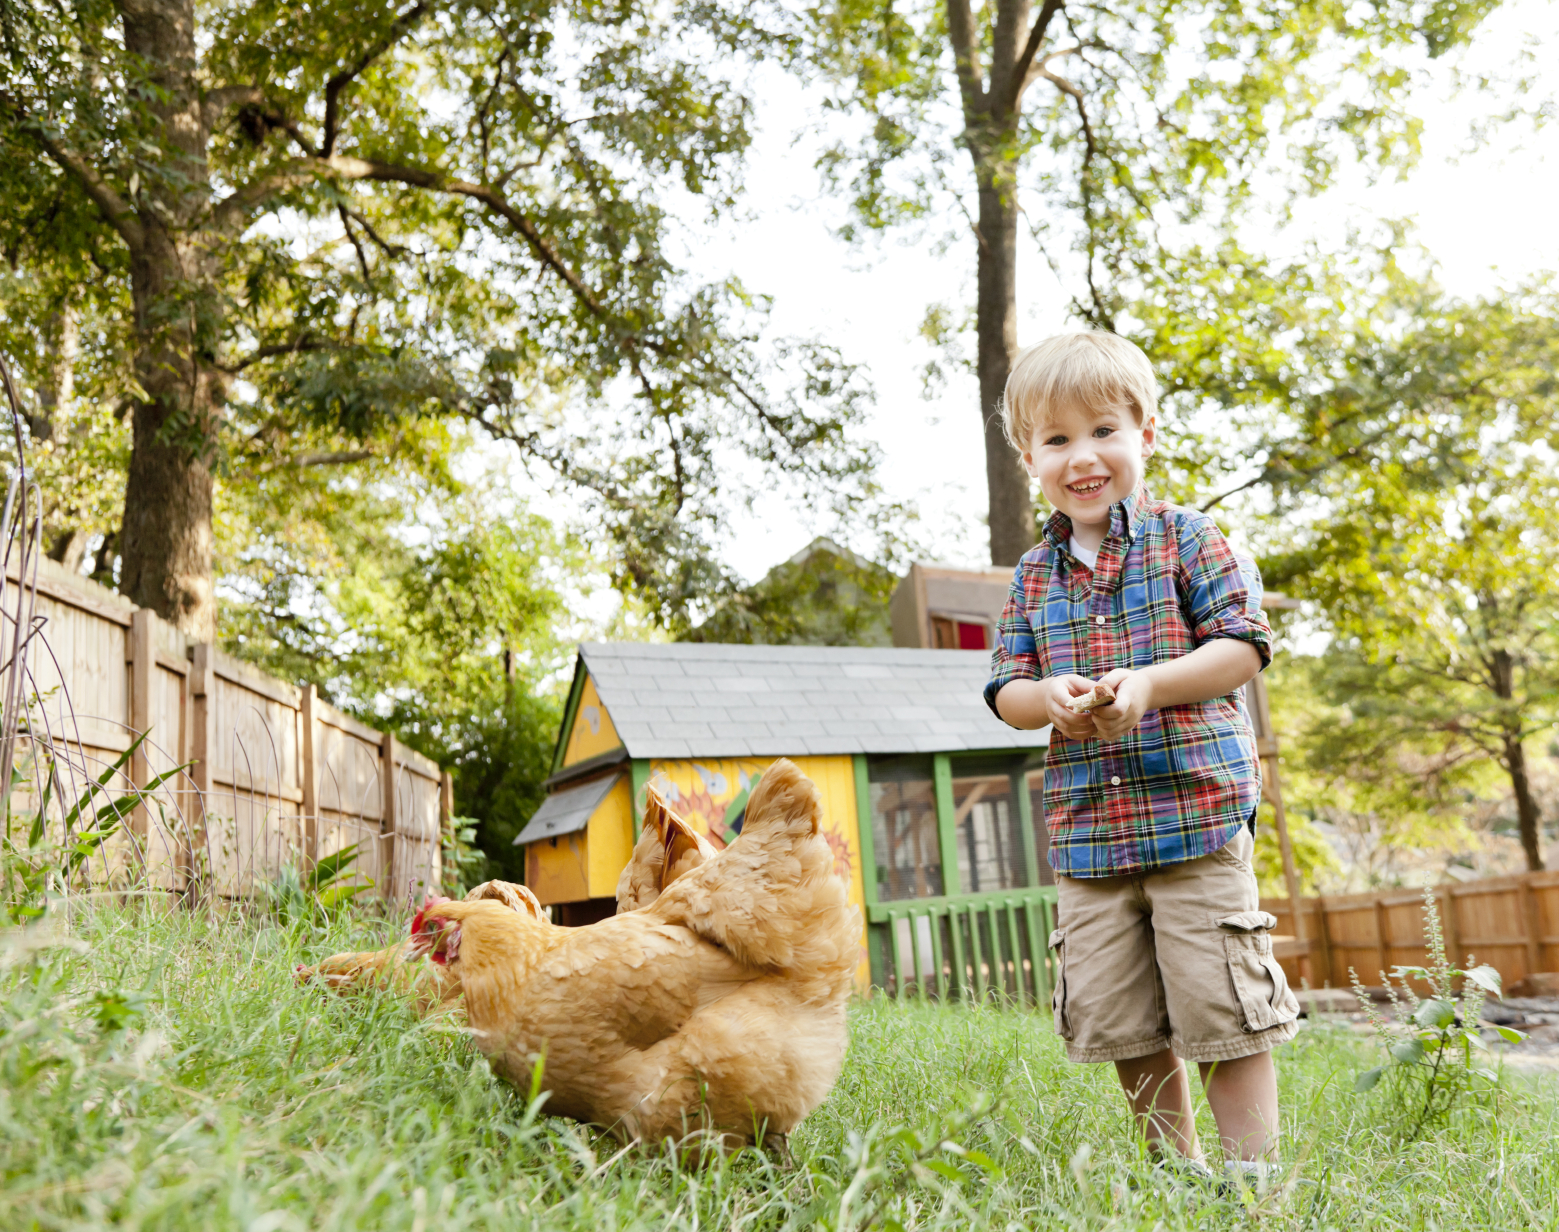 Top 10 Questions and Answers About Backyard Chickens